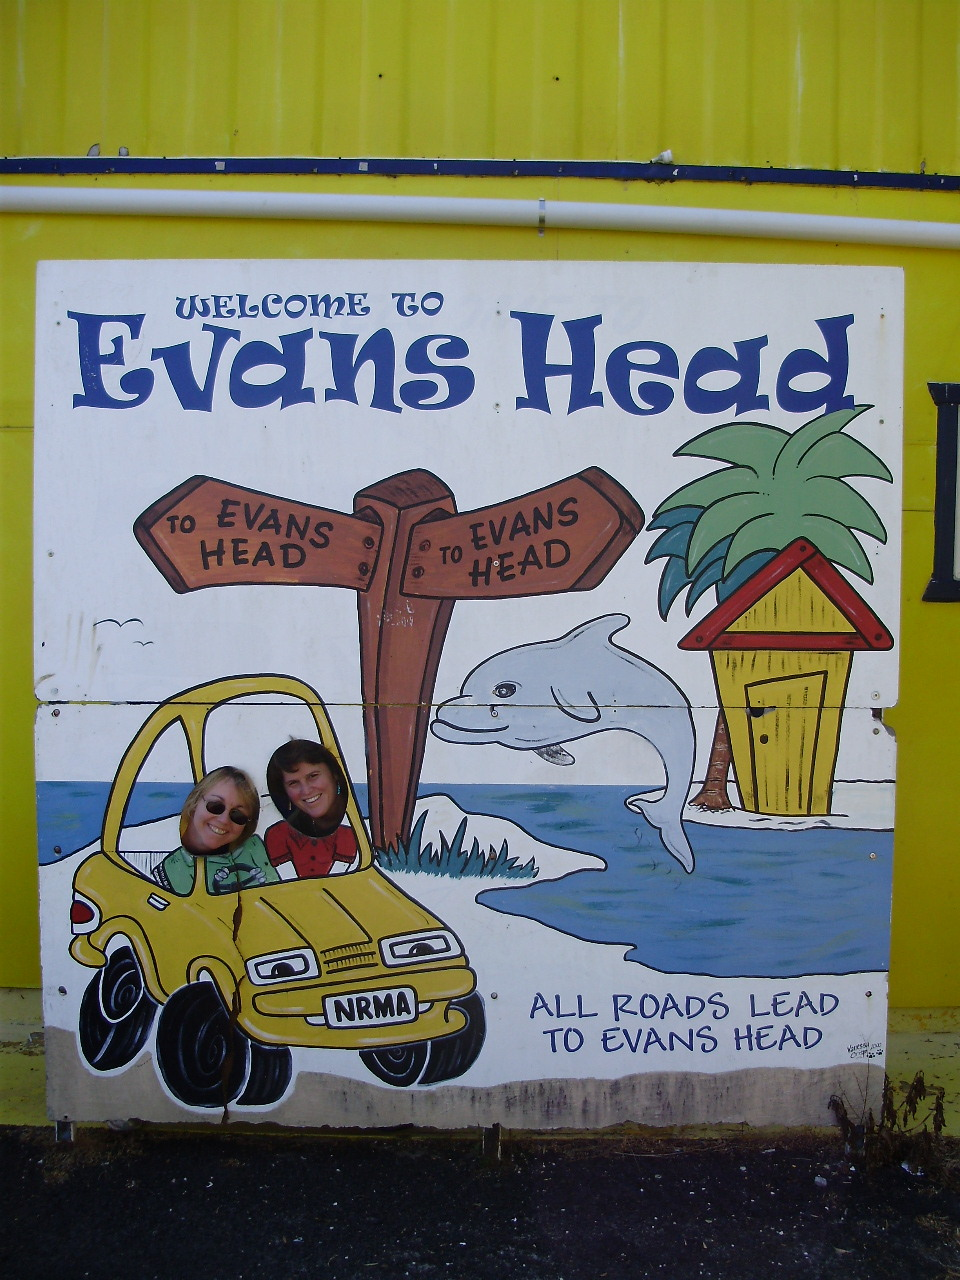 all roads lead to evans head